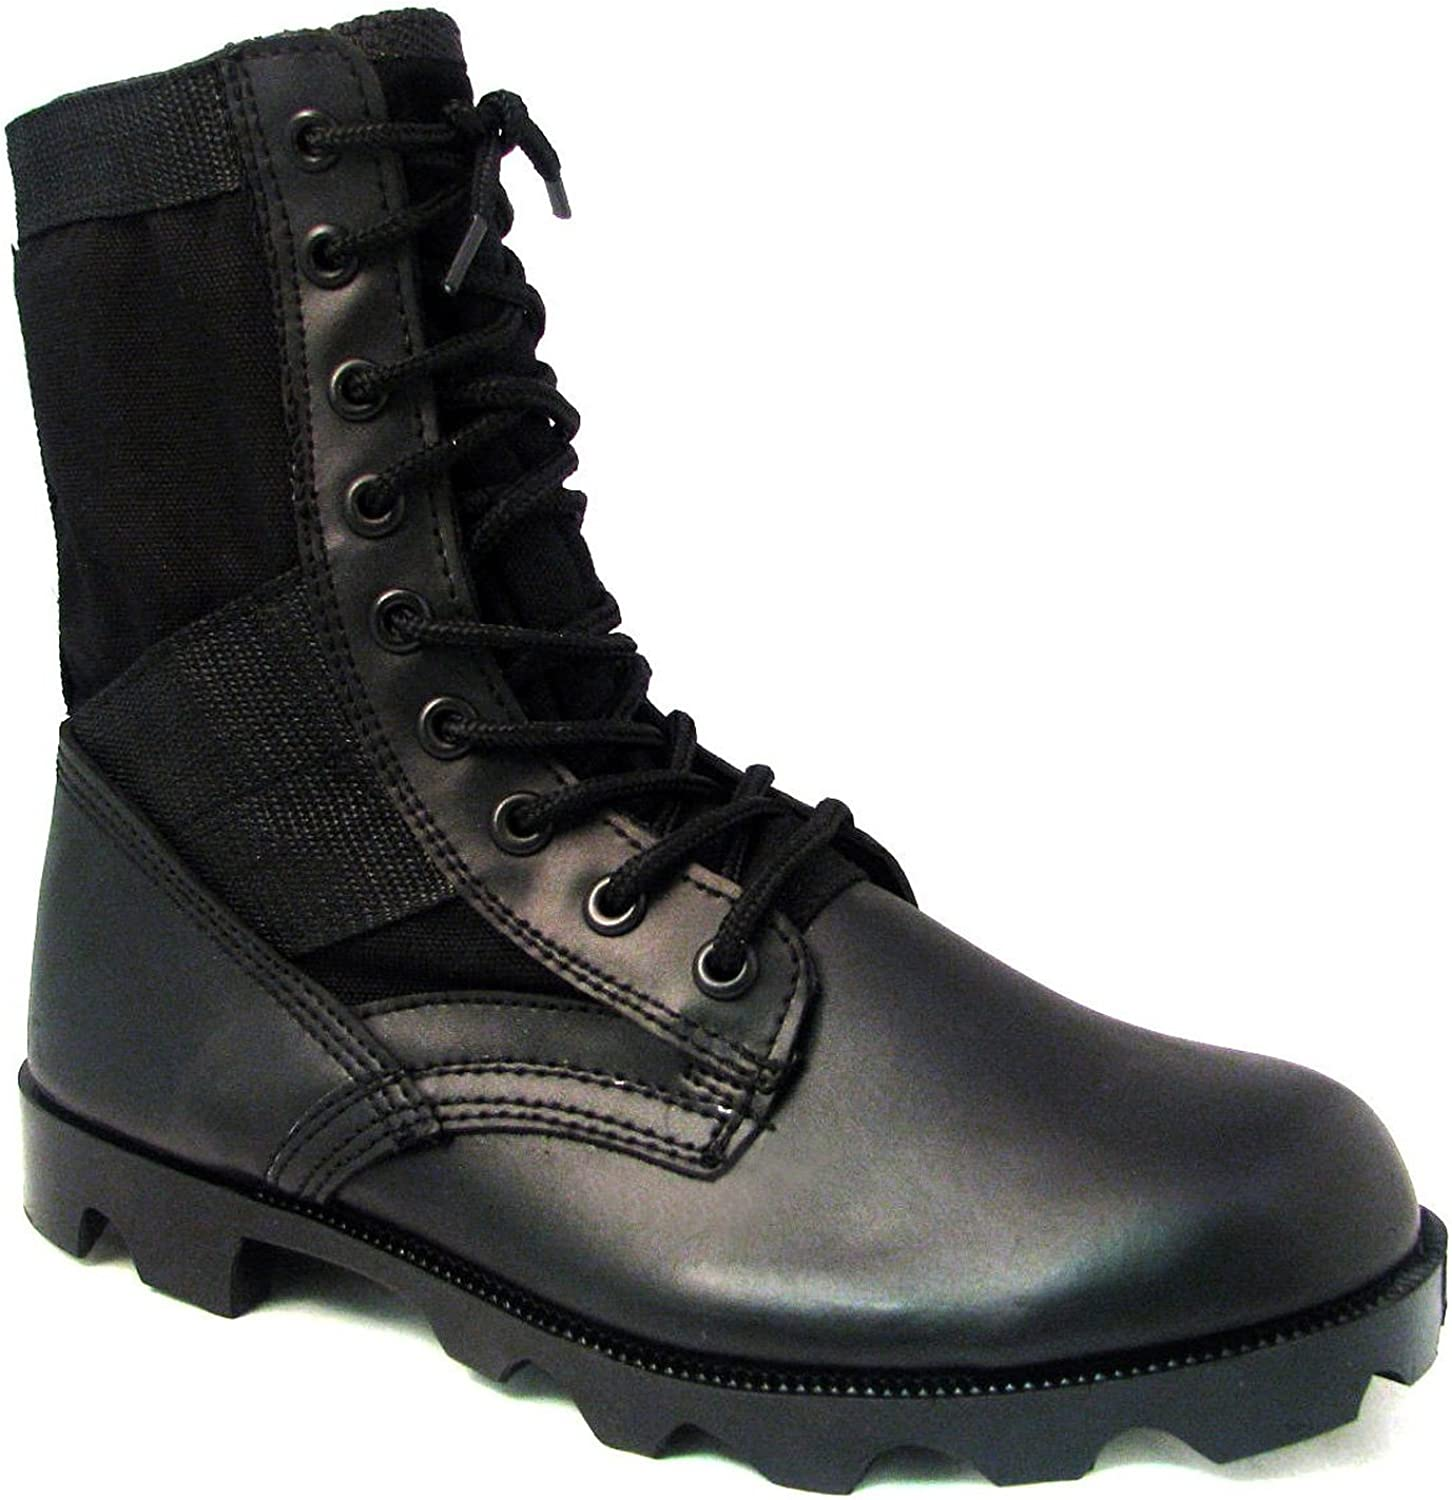 Men's Jungle Boots G.I. Type Lace up Tactical Combat Military Work Shoes Width: Wide (W or 2E), Black, Sand